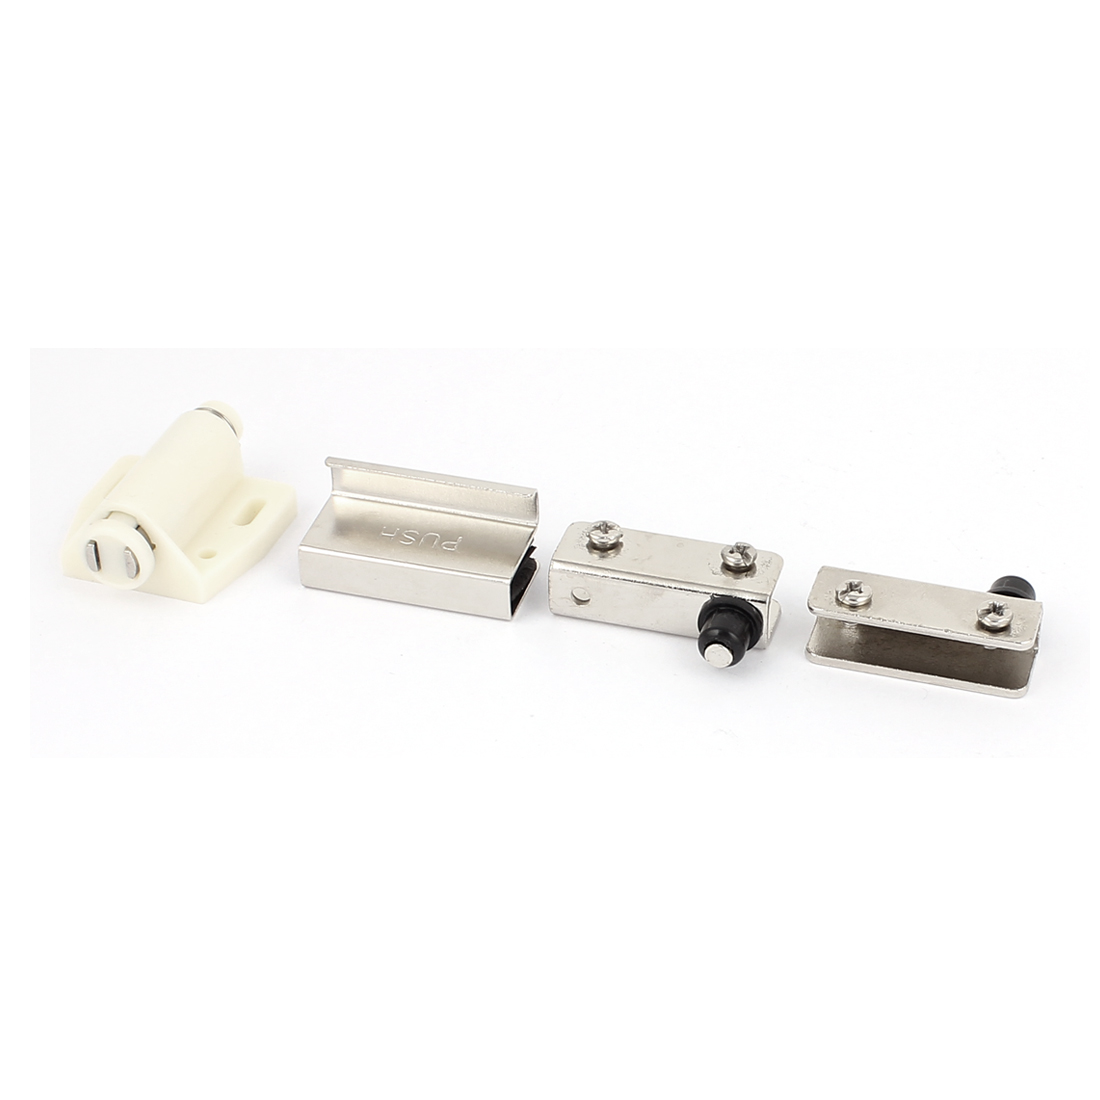 Home Door Drawer Cabinet Push to Open Single Magnet Magnetic Catch Touch Latch Clamp Set